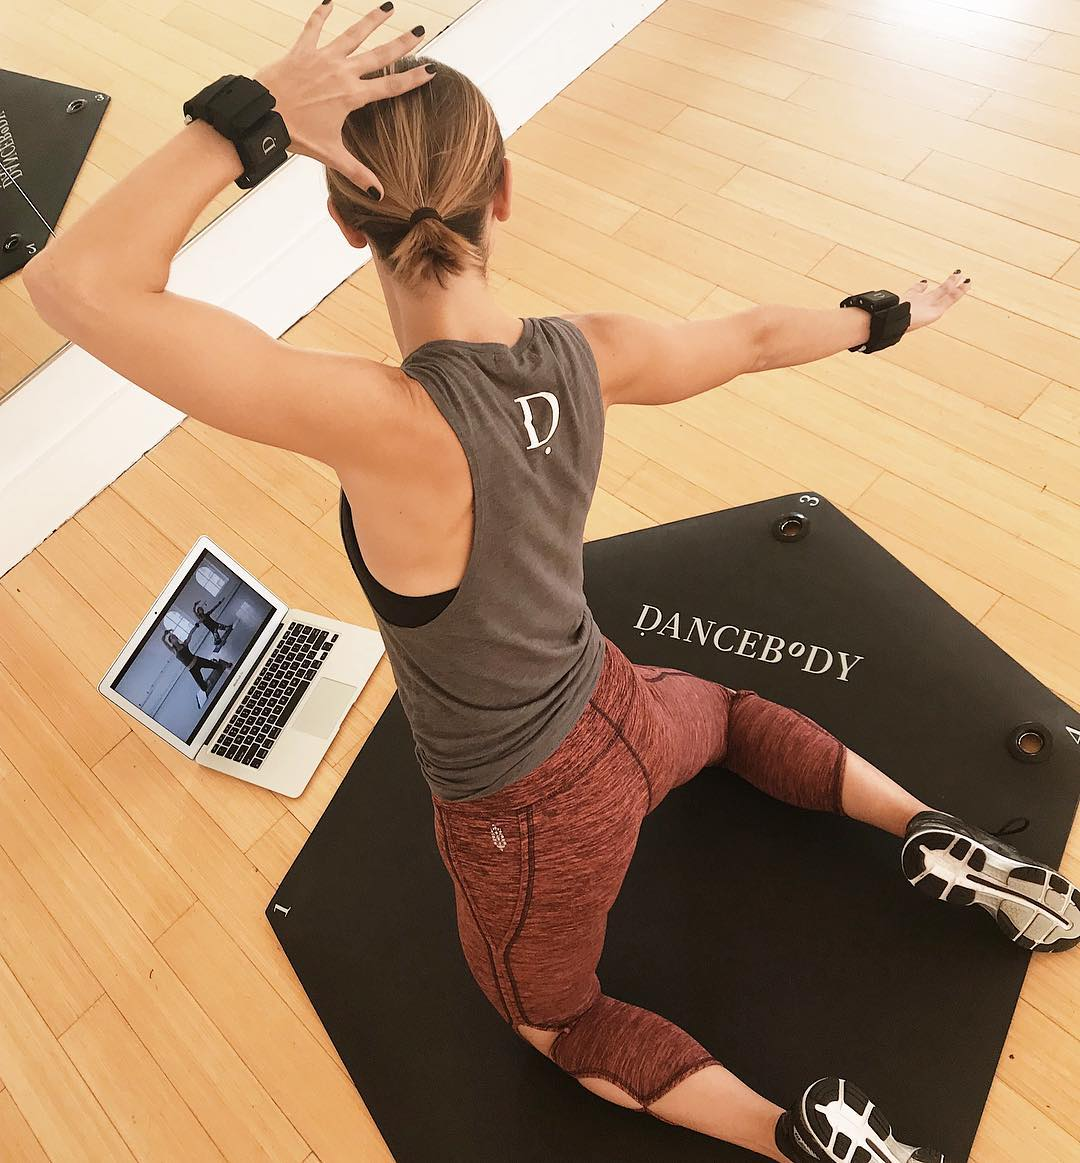 Dancebody online streaming workouts